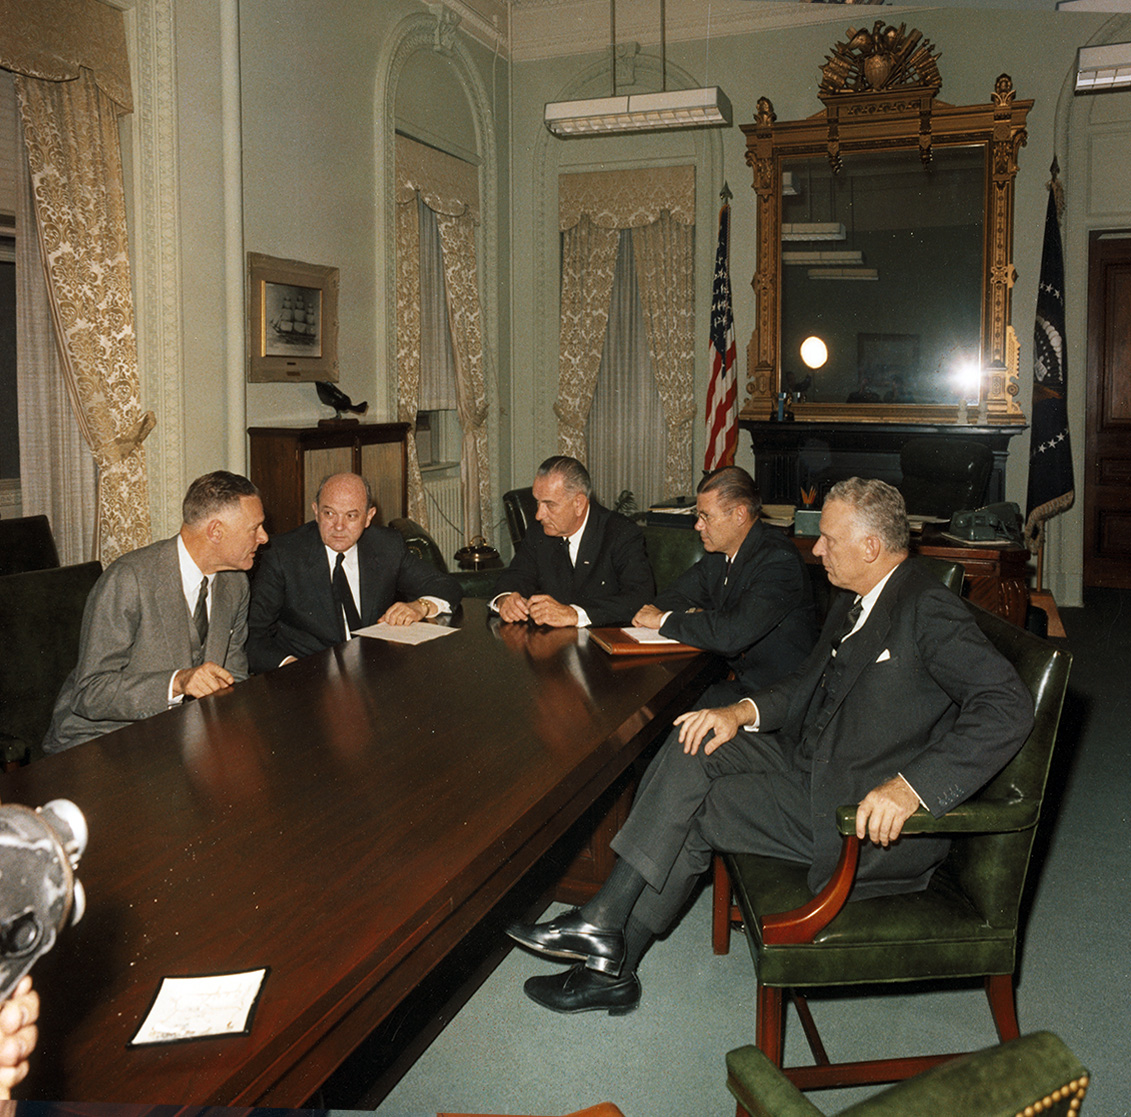 Lodge was the first diplomat that LBJ saw as president. Lodge returned to consult with JFK about the coup, learned while en route that he had been killed, and instead briefed LBJ while still in his EOB office (along with Rusk, McNamara, and Ball)